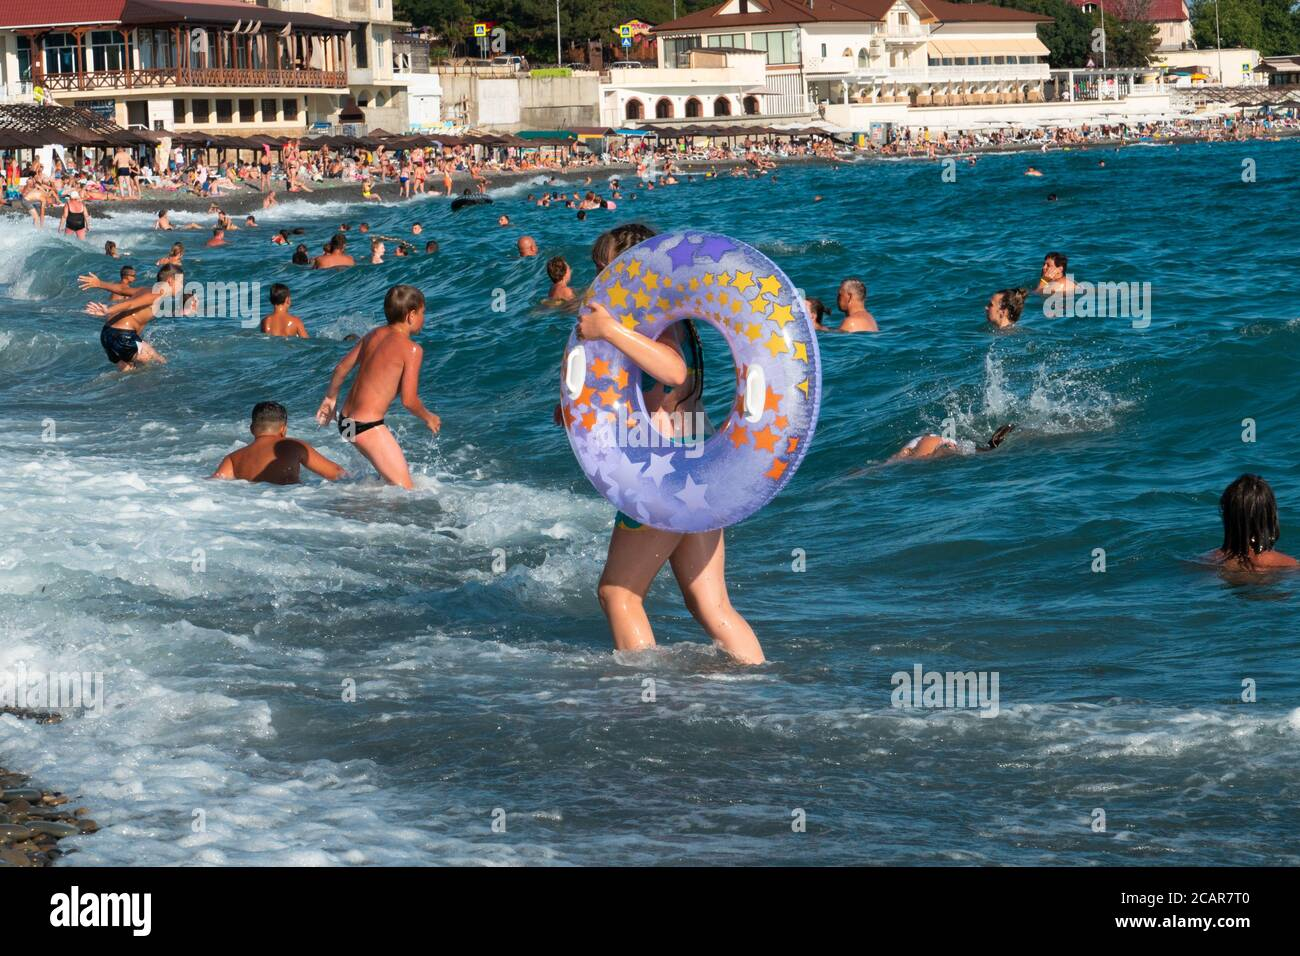 People On A Resort Of Krasnodar Krai Shirokaya Balka Beach Stock Photo Alamy